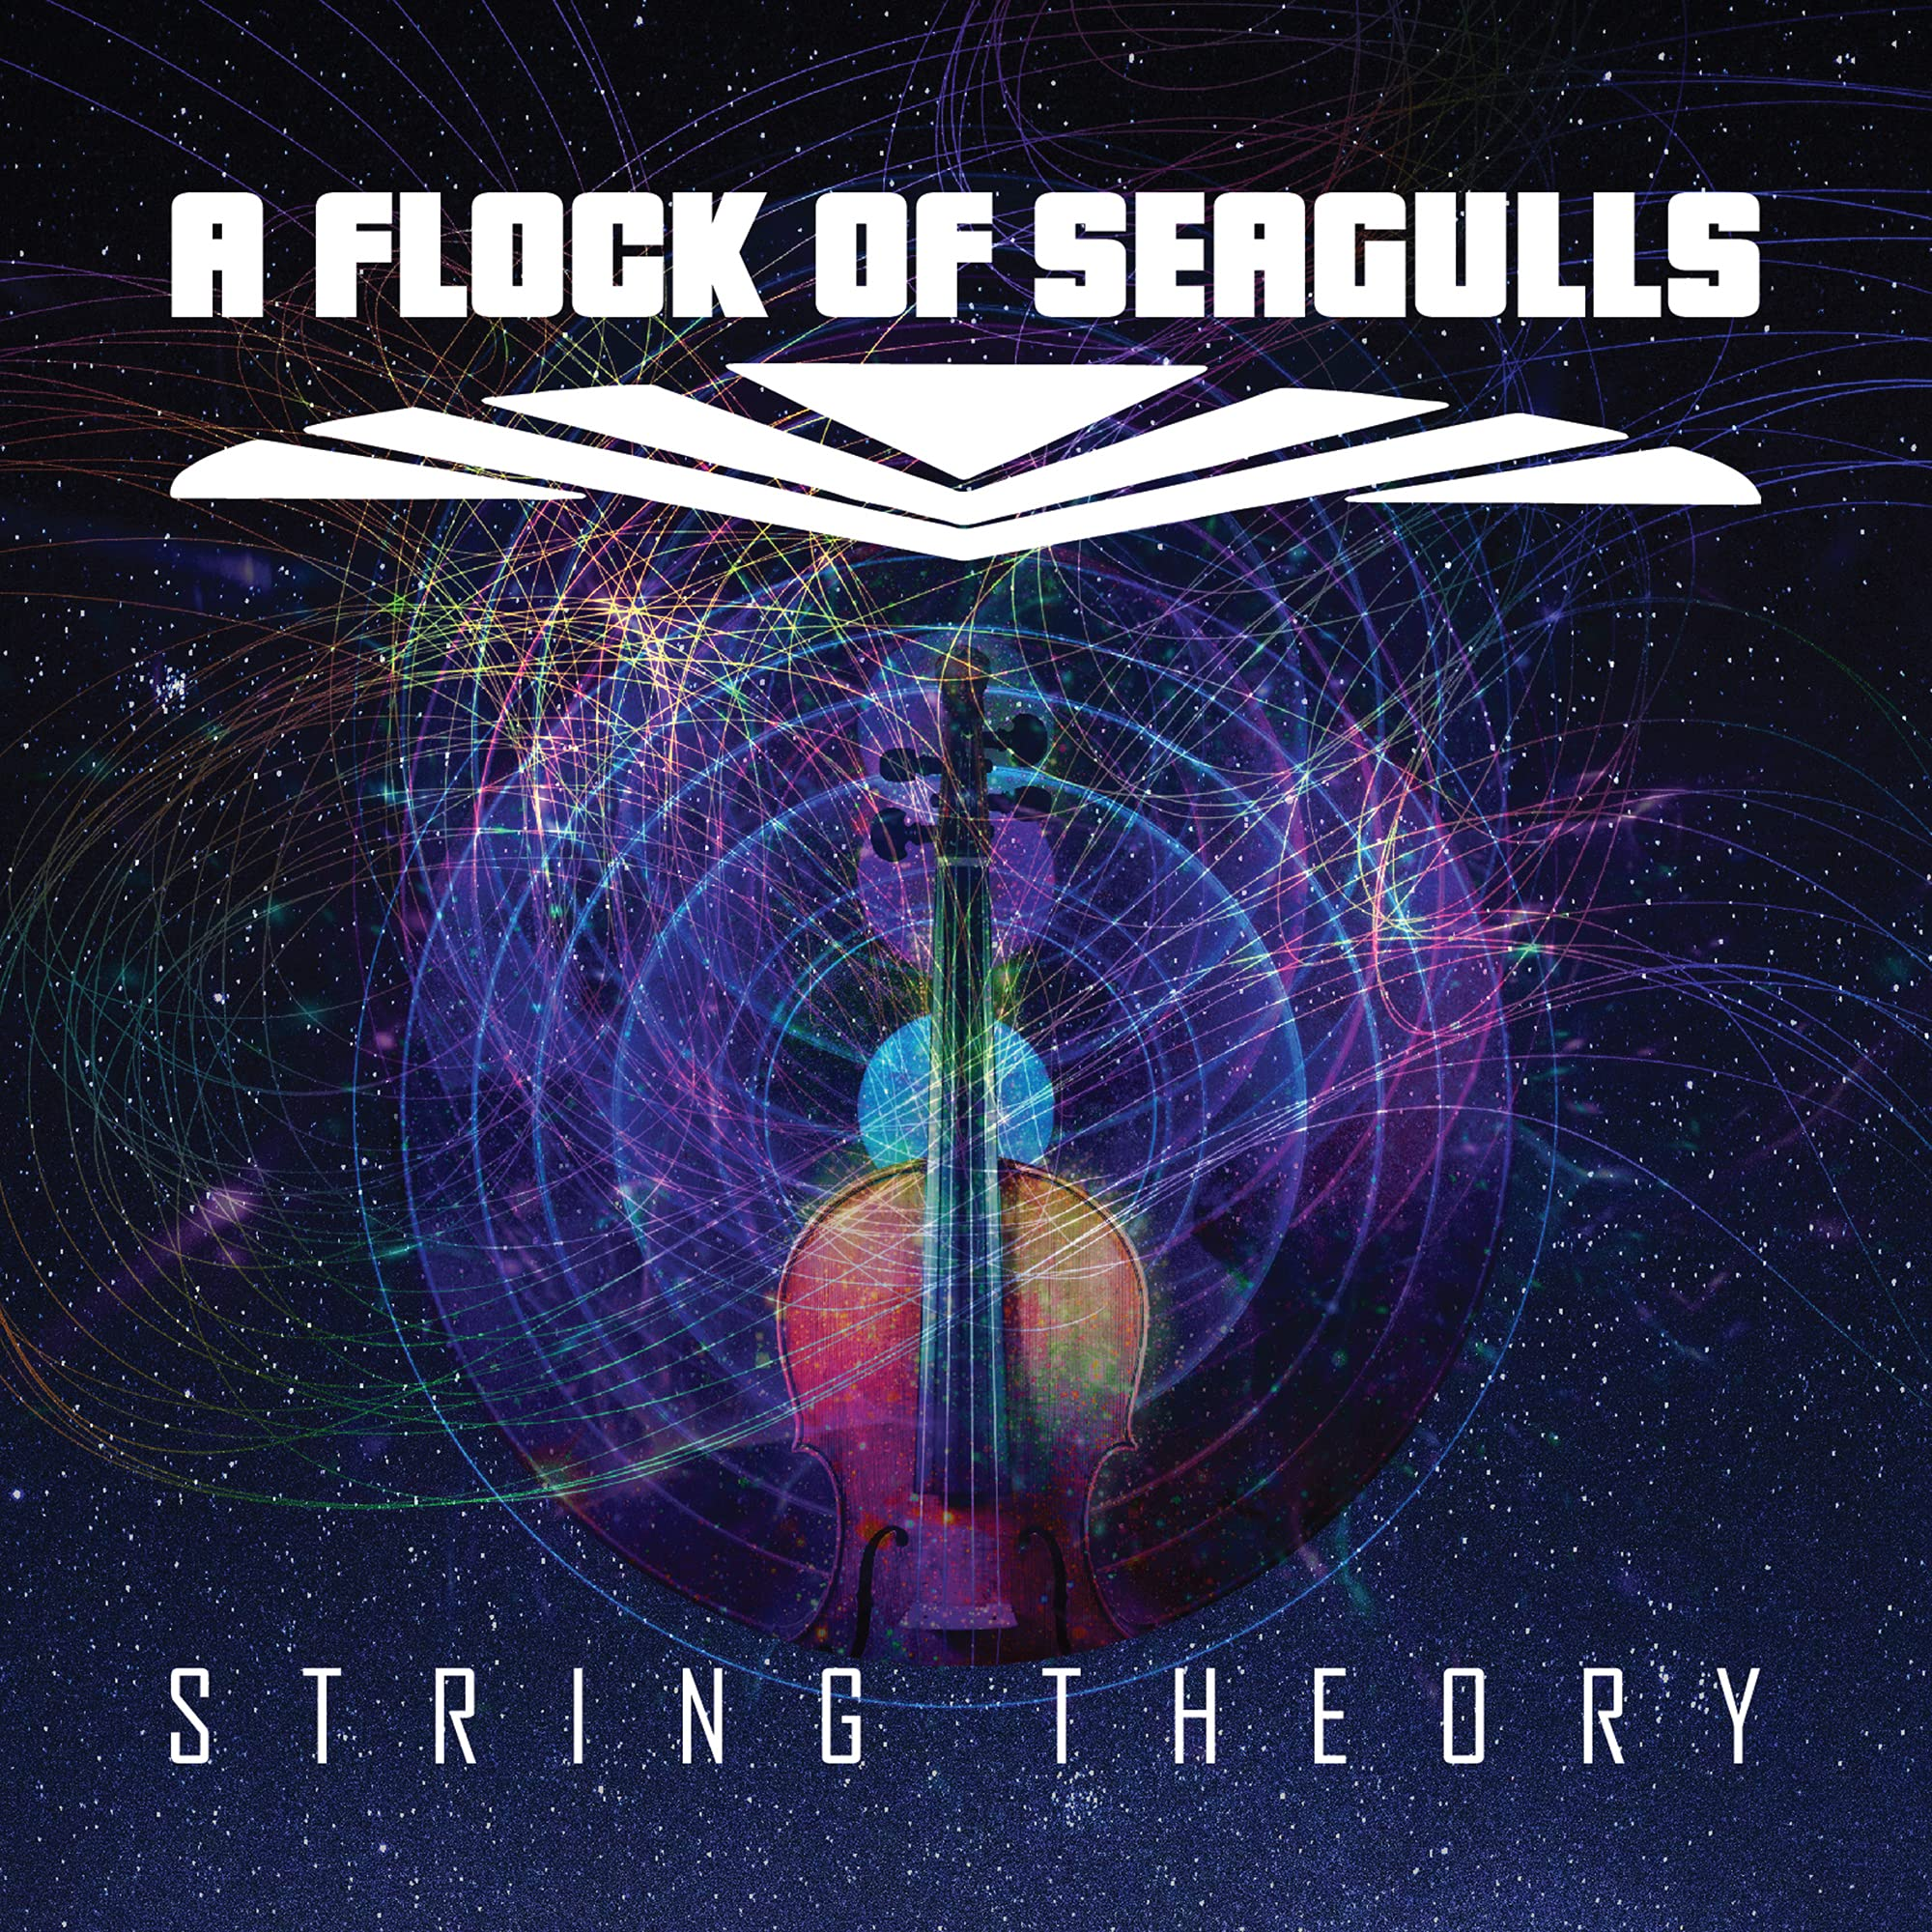 A Flock Of Seagulls - String Theory (2021) [FLAC] Download